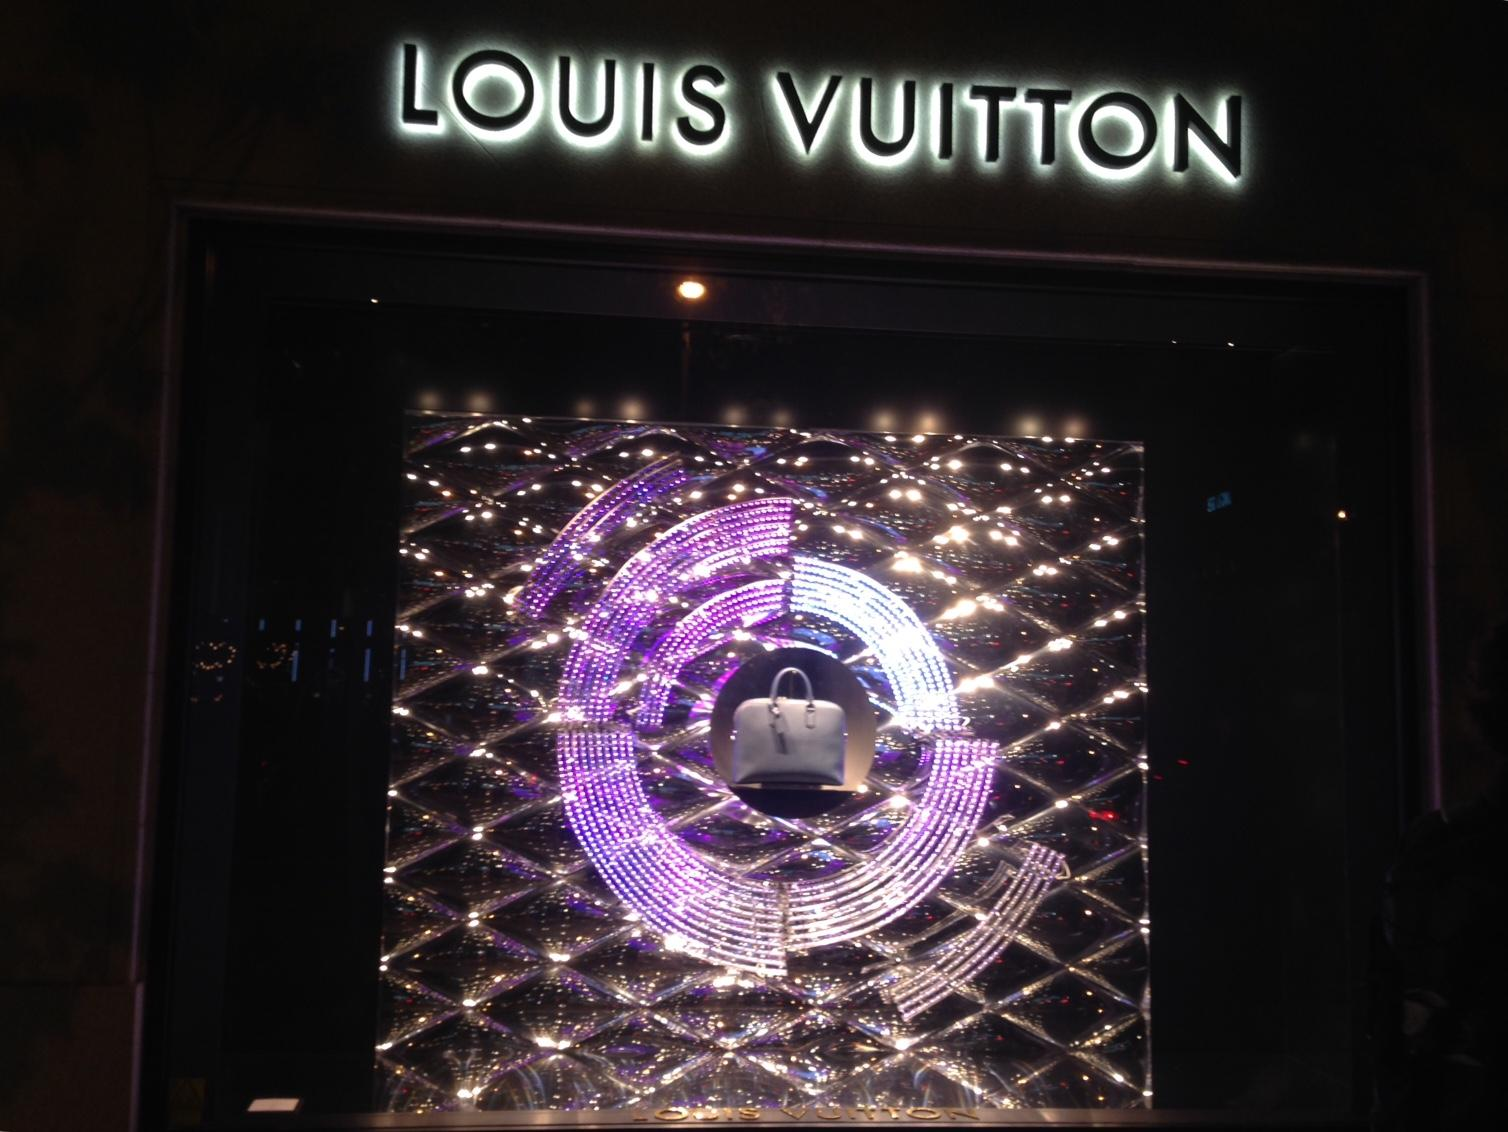 Louis Vuitton escaparates Navidad Madrid (3)